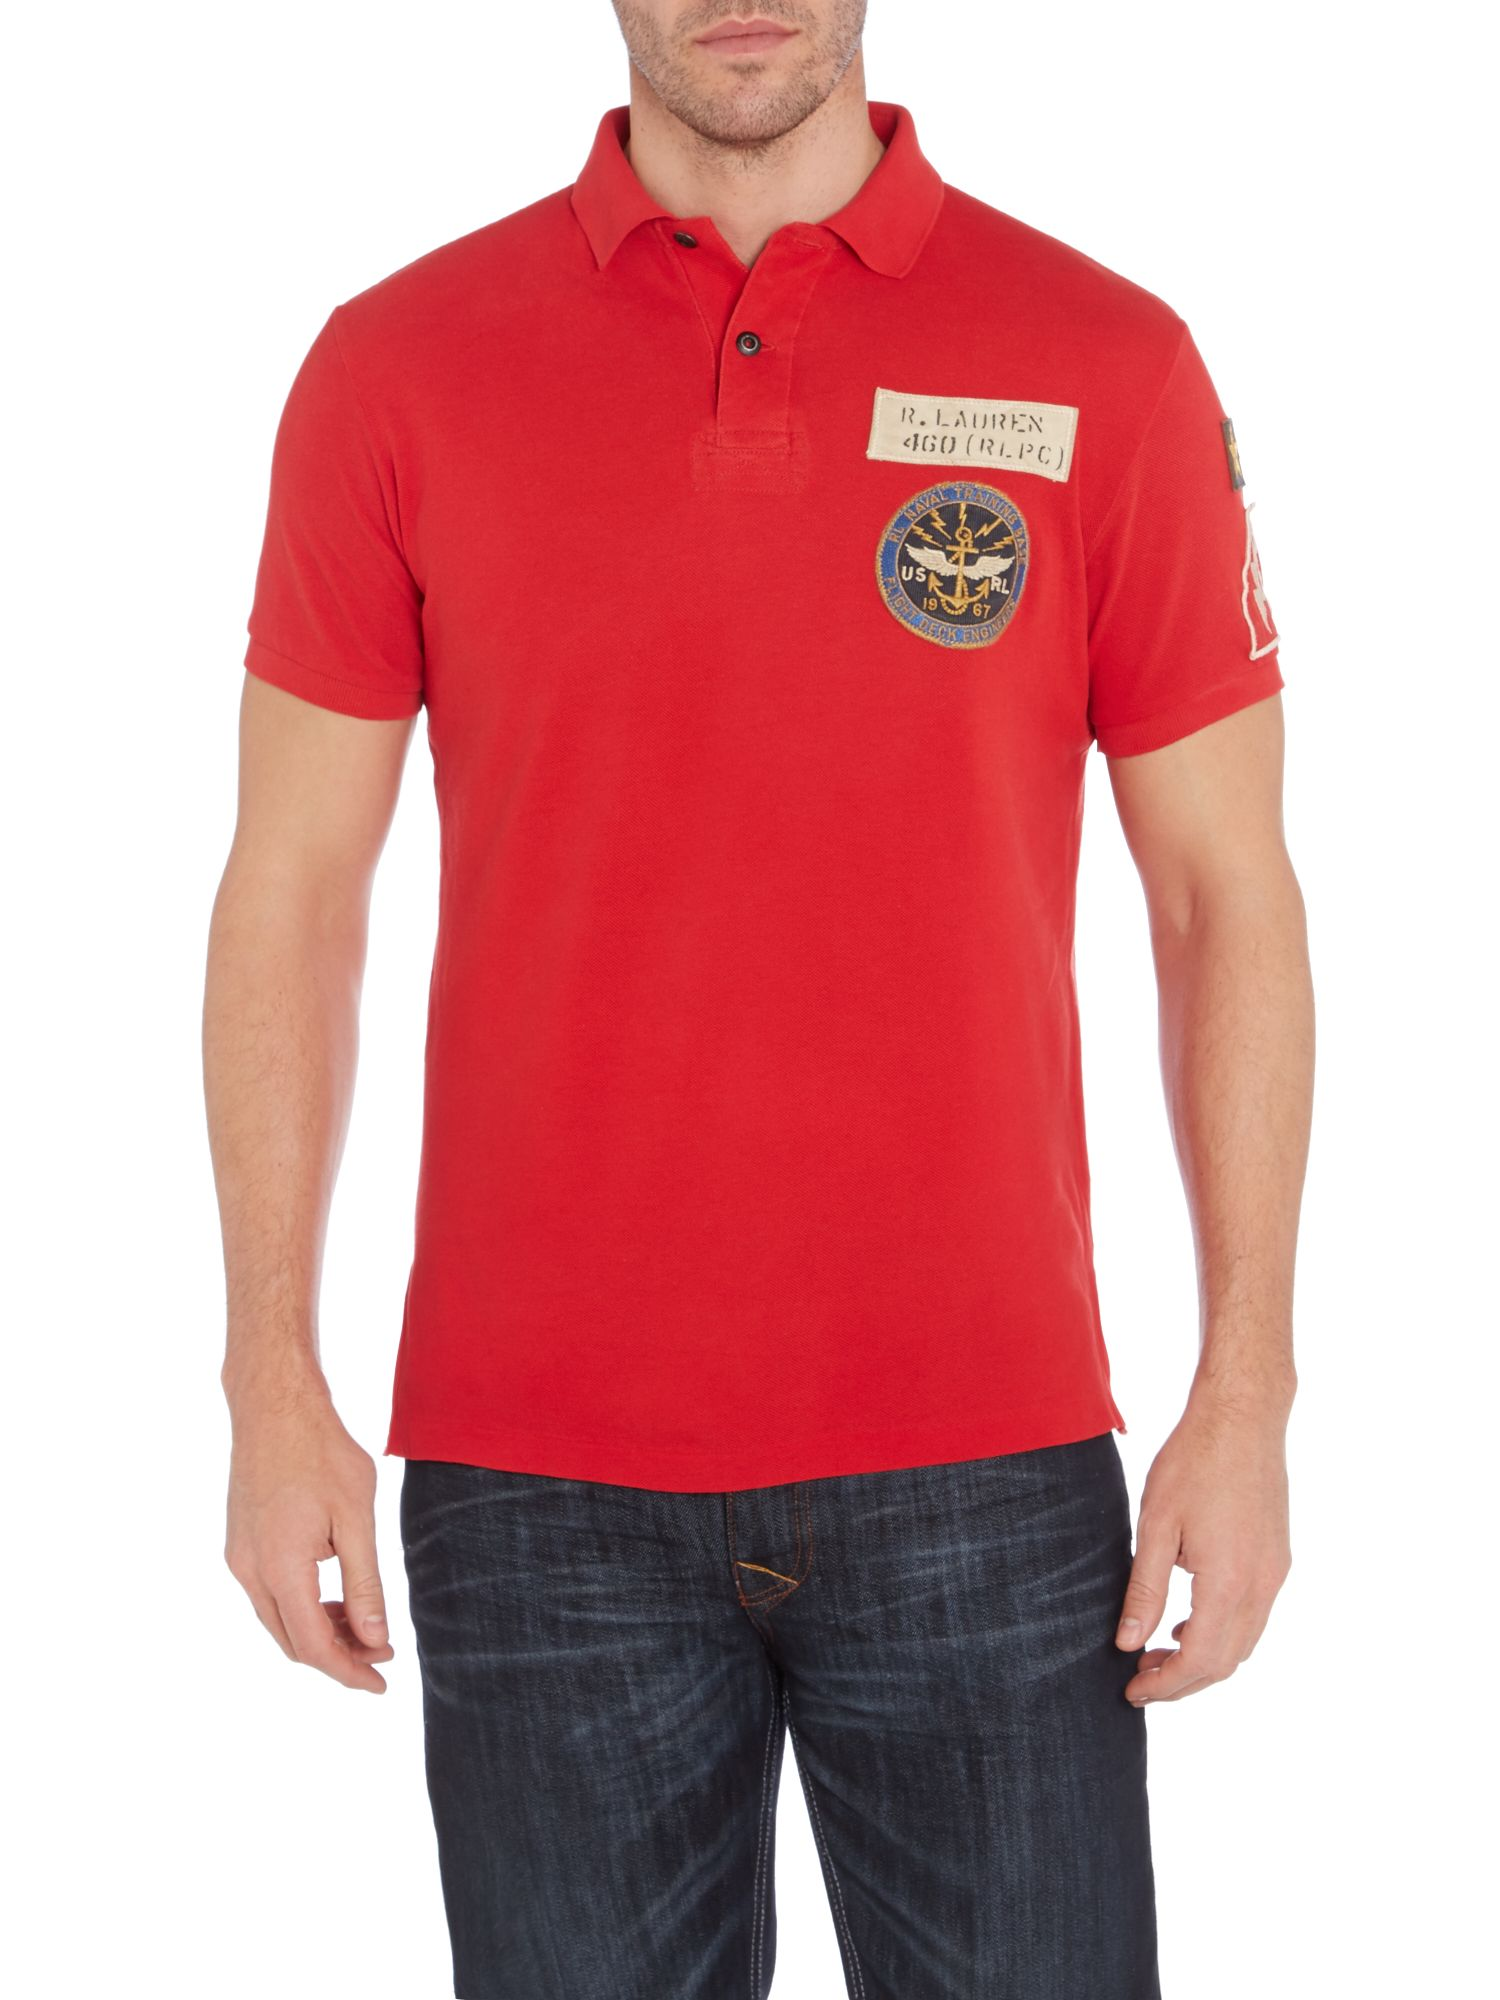 Rugged tiger applique custom fit polo shirt